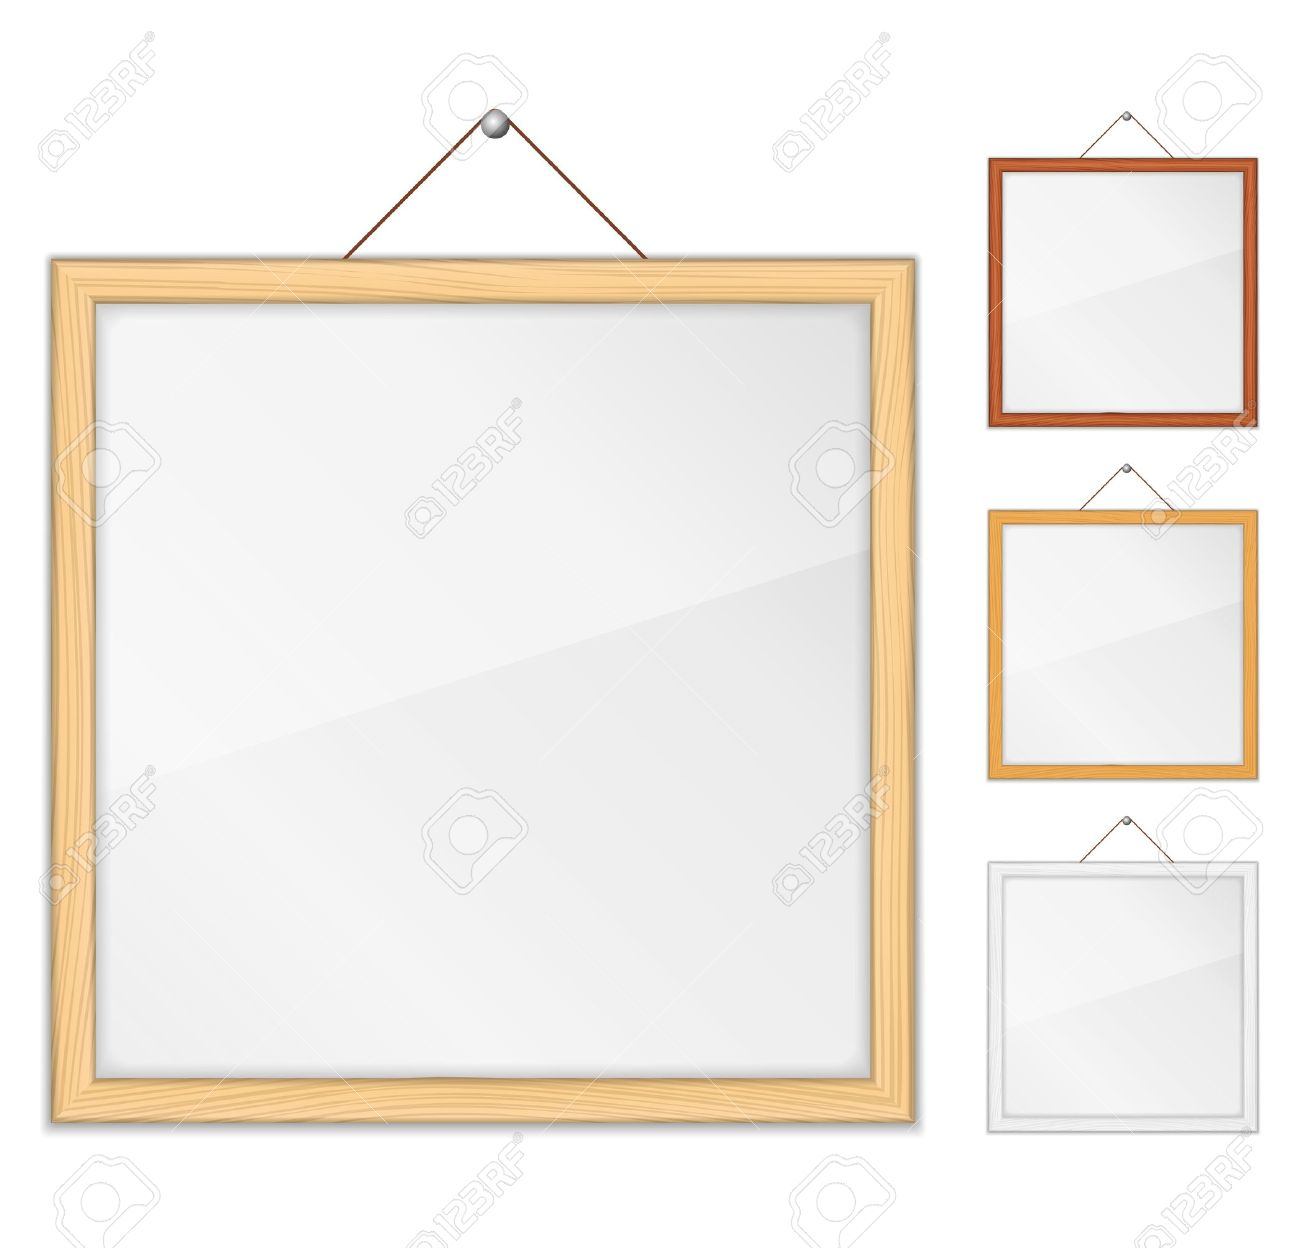 empty wooden frames with glass stock vector - Wooden Picture Frames